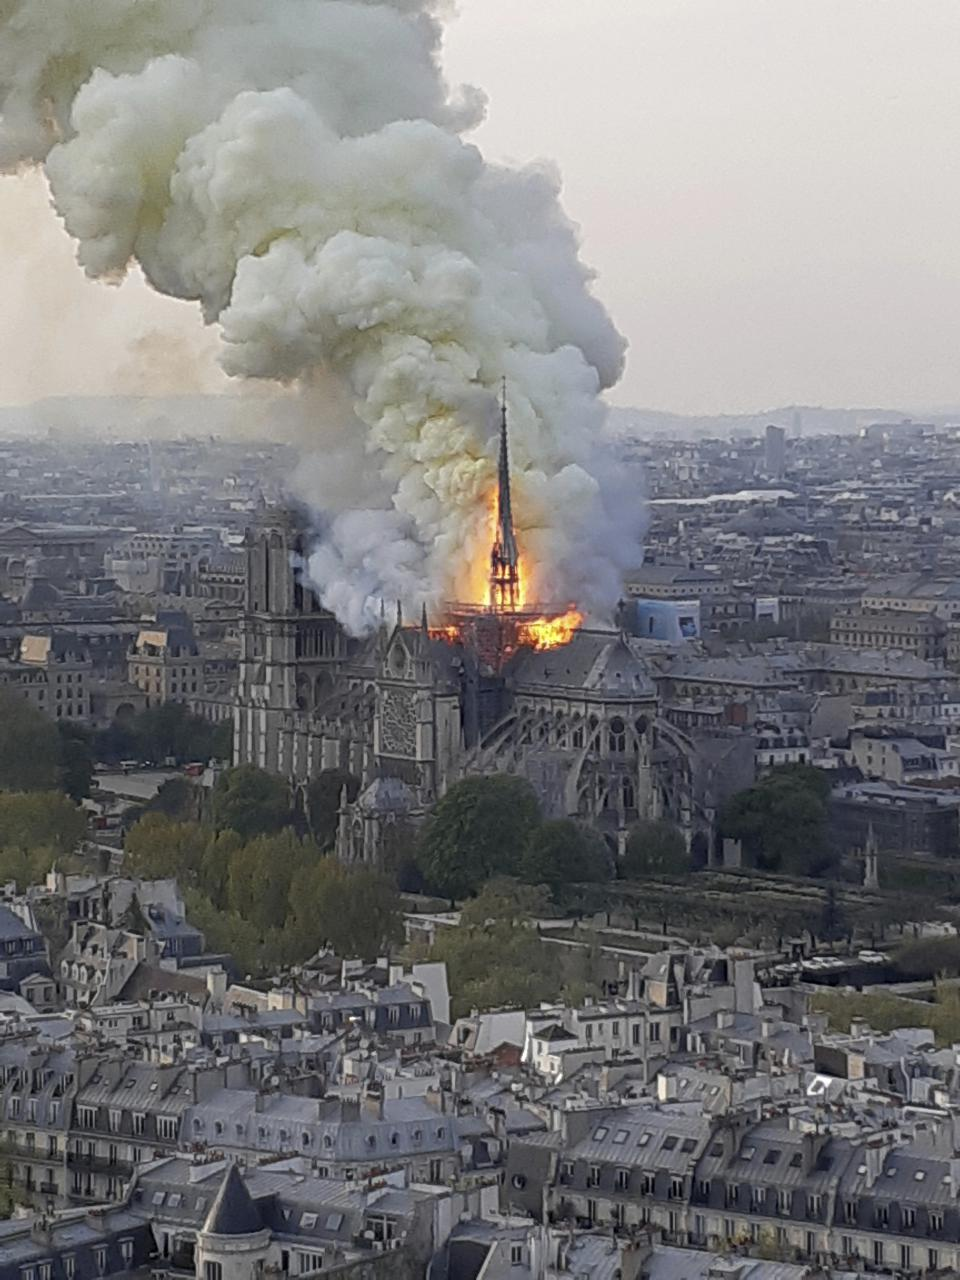 Notre Dame am 15. April 2019 in Flammen